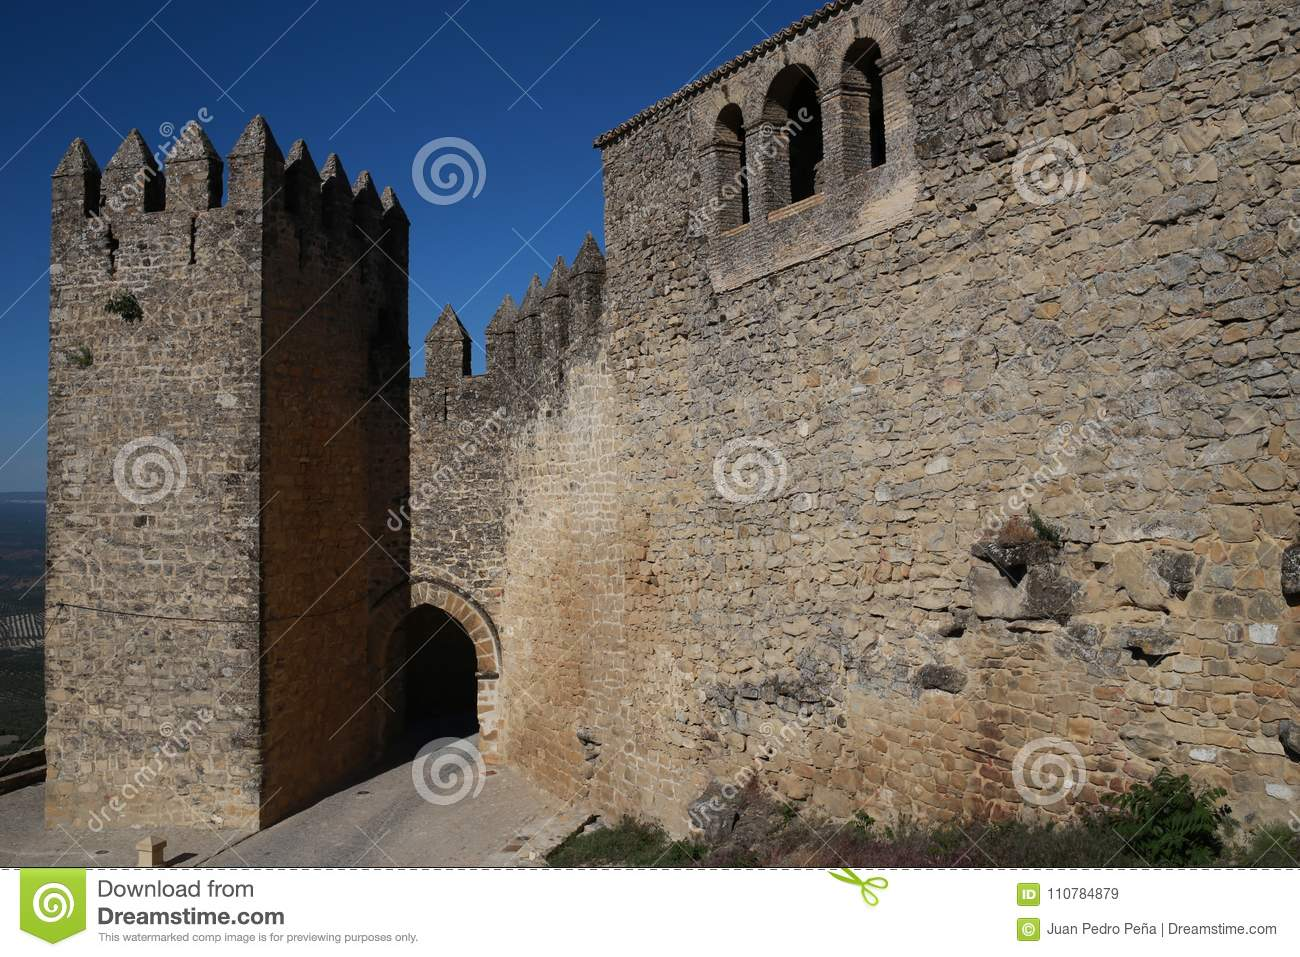 Walls of Sabiote, village of Jaen, in Andalusia